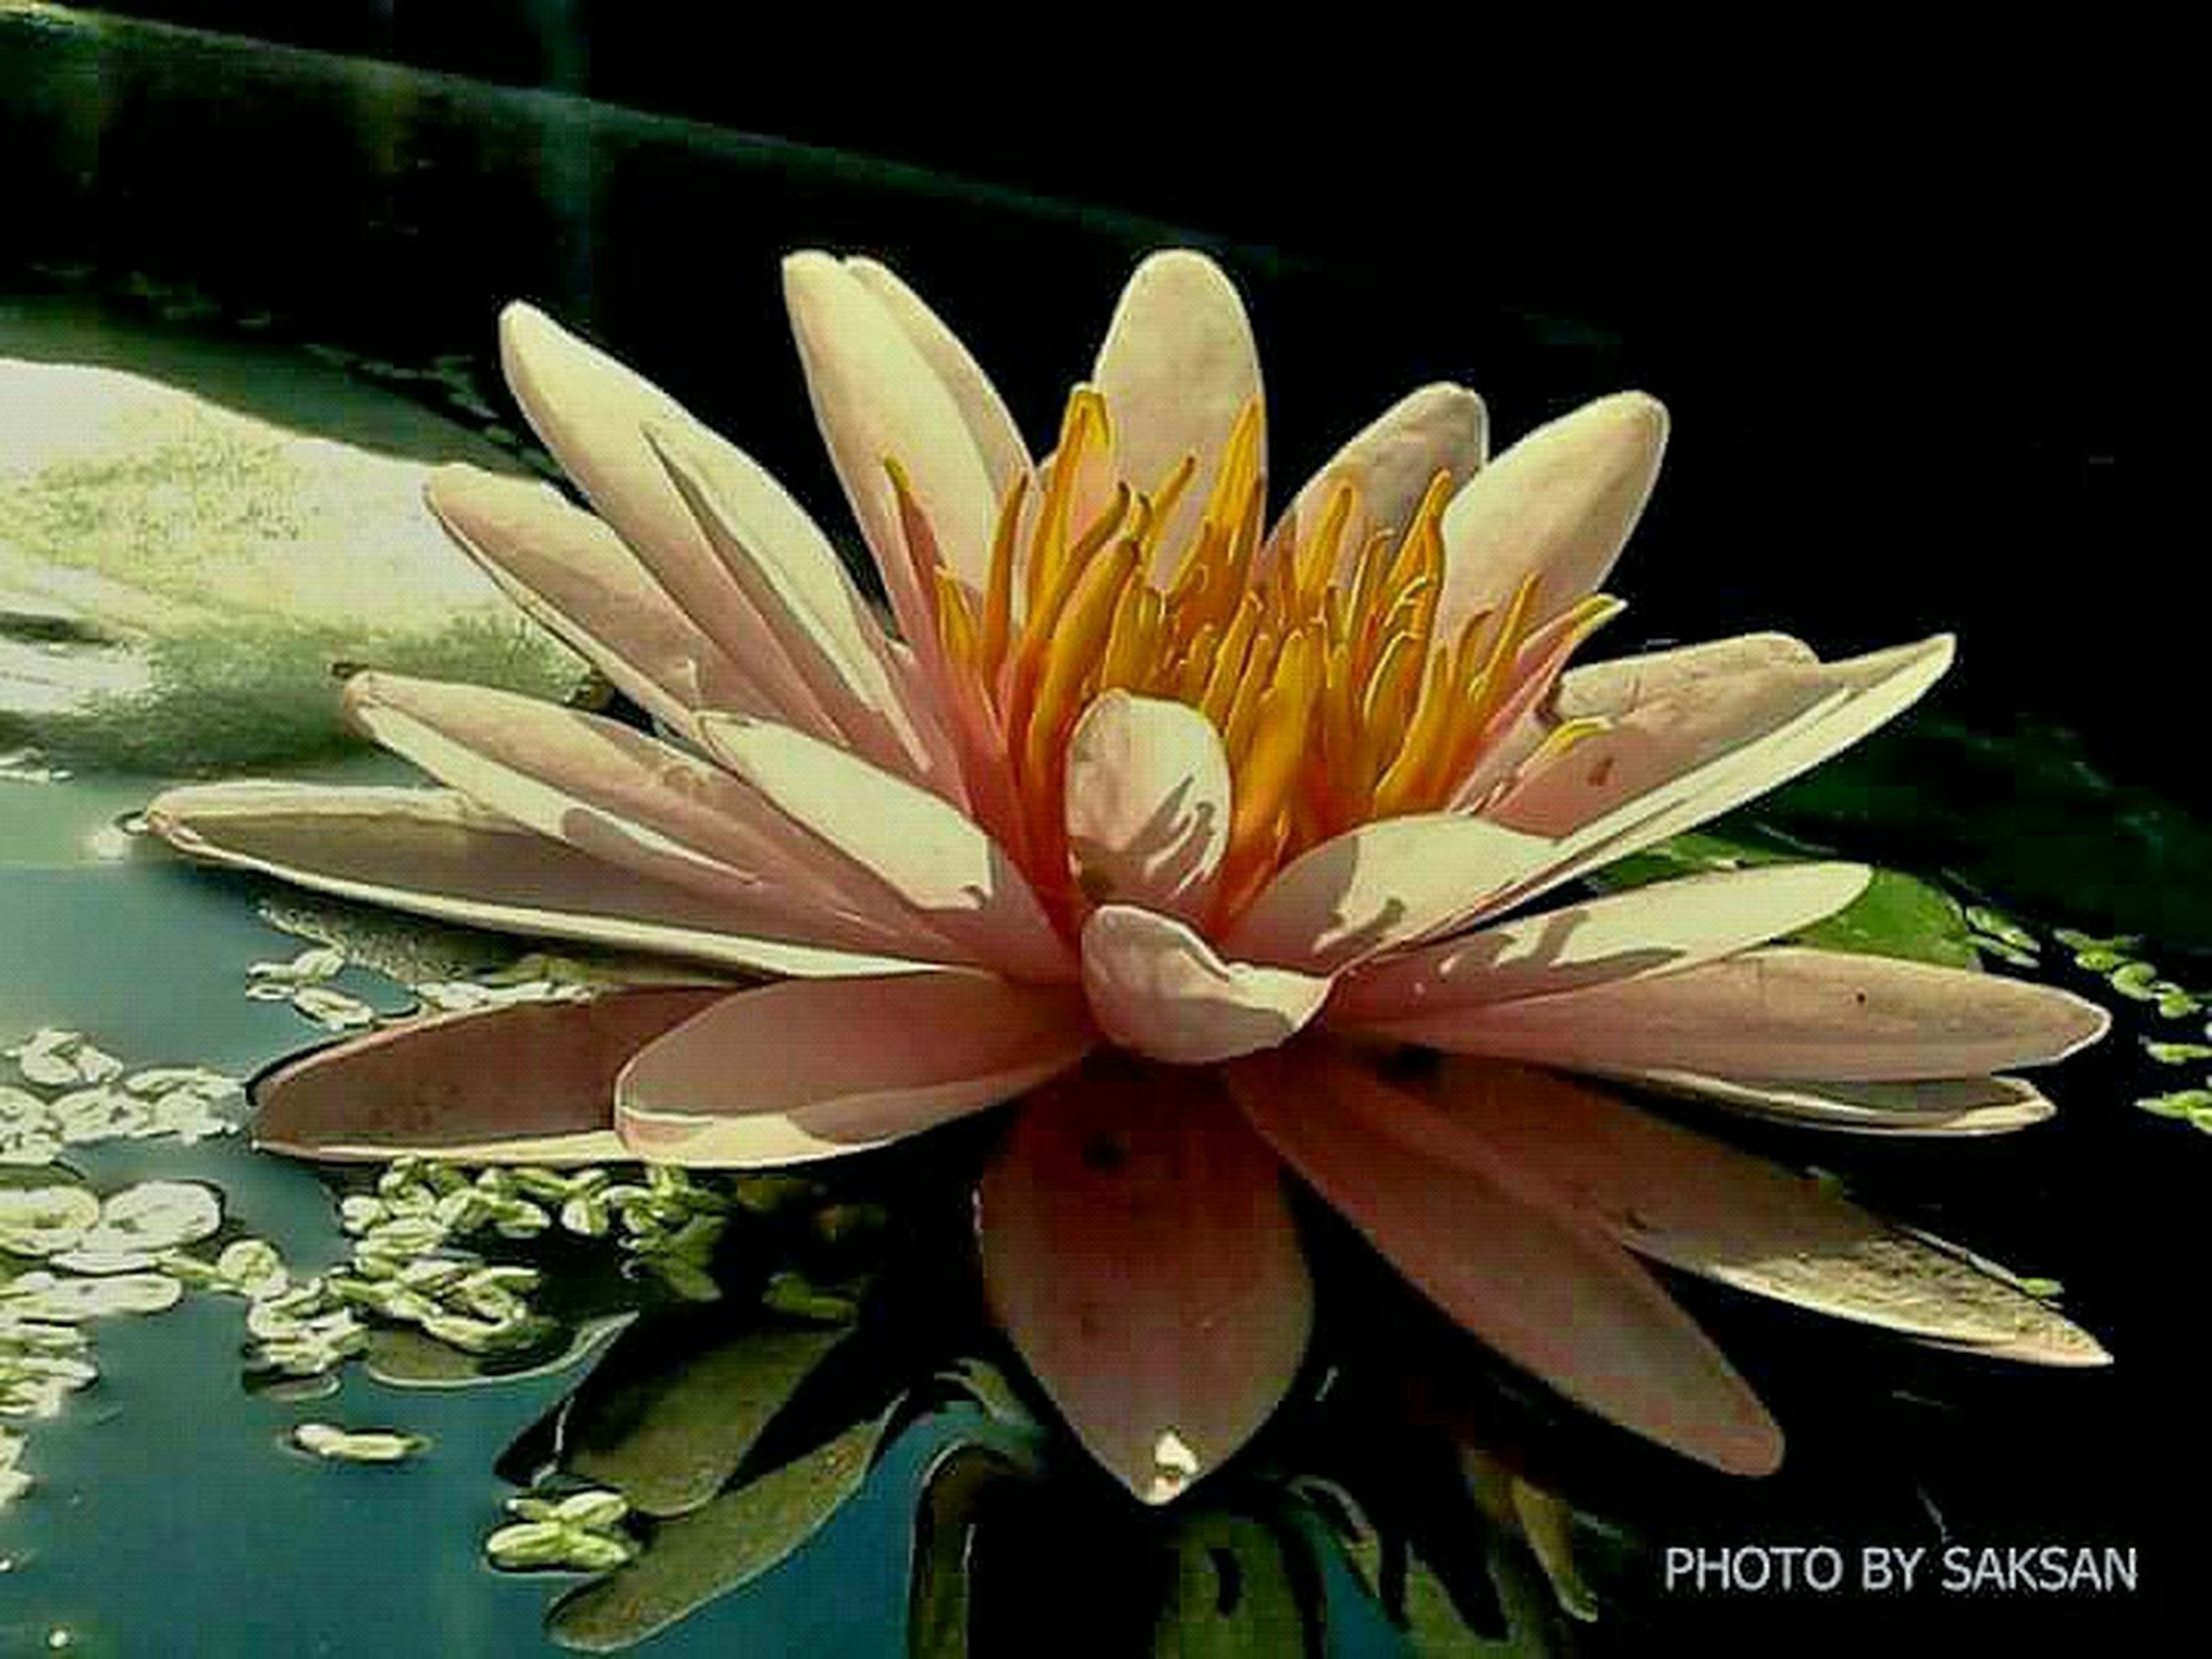 flower, petal, flower head, freshness, fragility, water lily, single flower, water, beauty in nature, pond, close-up, growth, nature, pollen, blooming, lotus water lily, plant, yellow, leaf, stamen